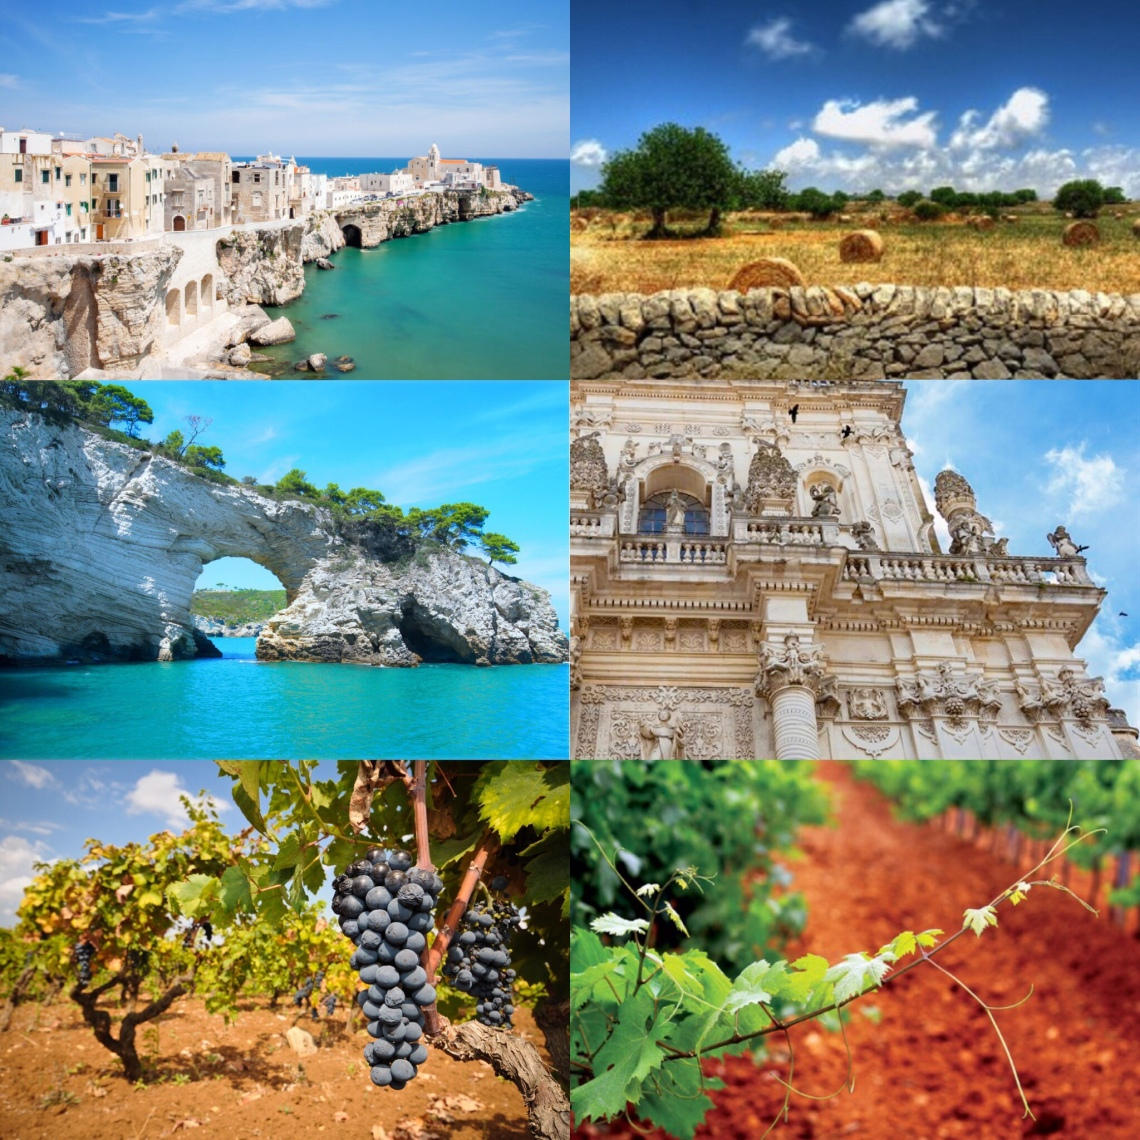 Various images of Puglia and its landscape